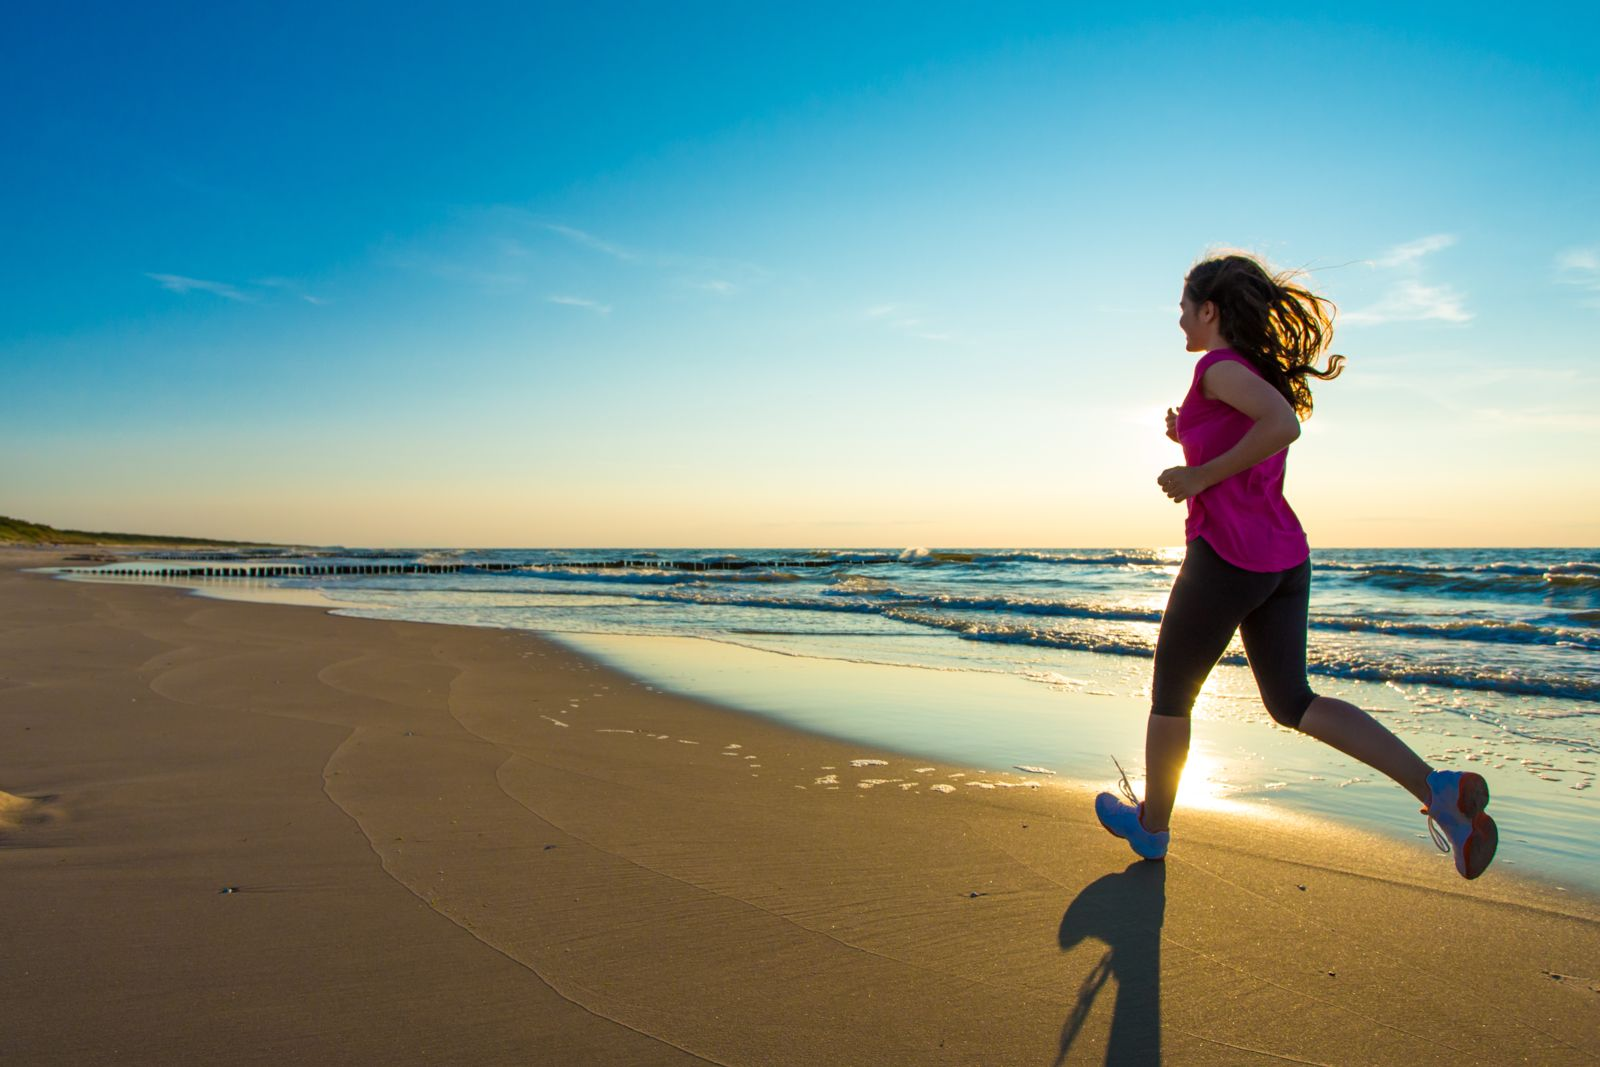 Running in the summer is great on the beach, but watch out for dehydration when the humidity rises.